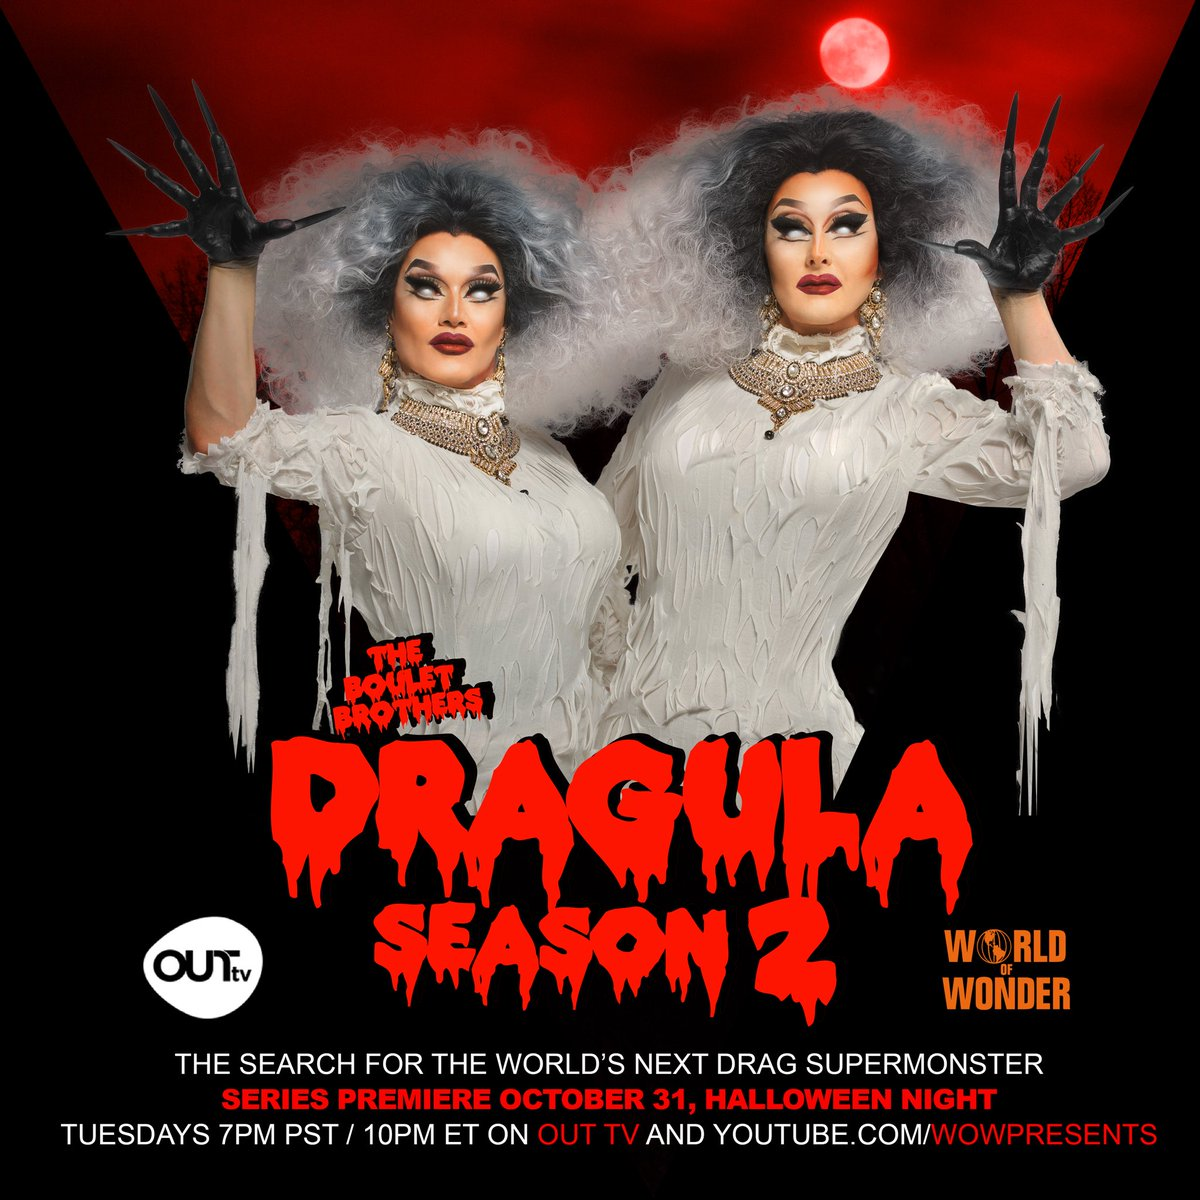 The Boulet Brother's Dragula Season 2